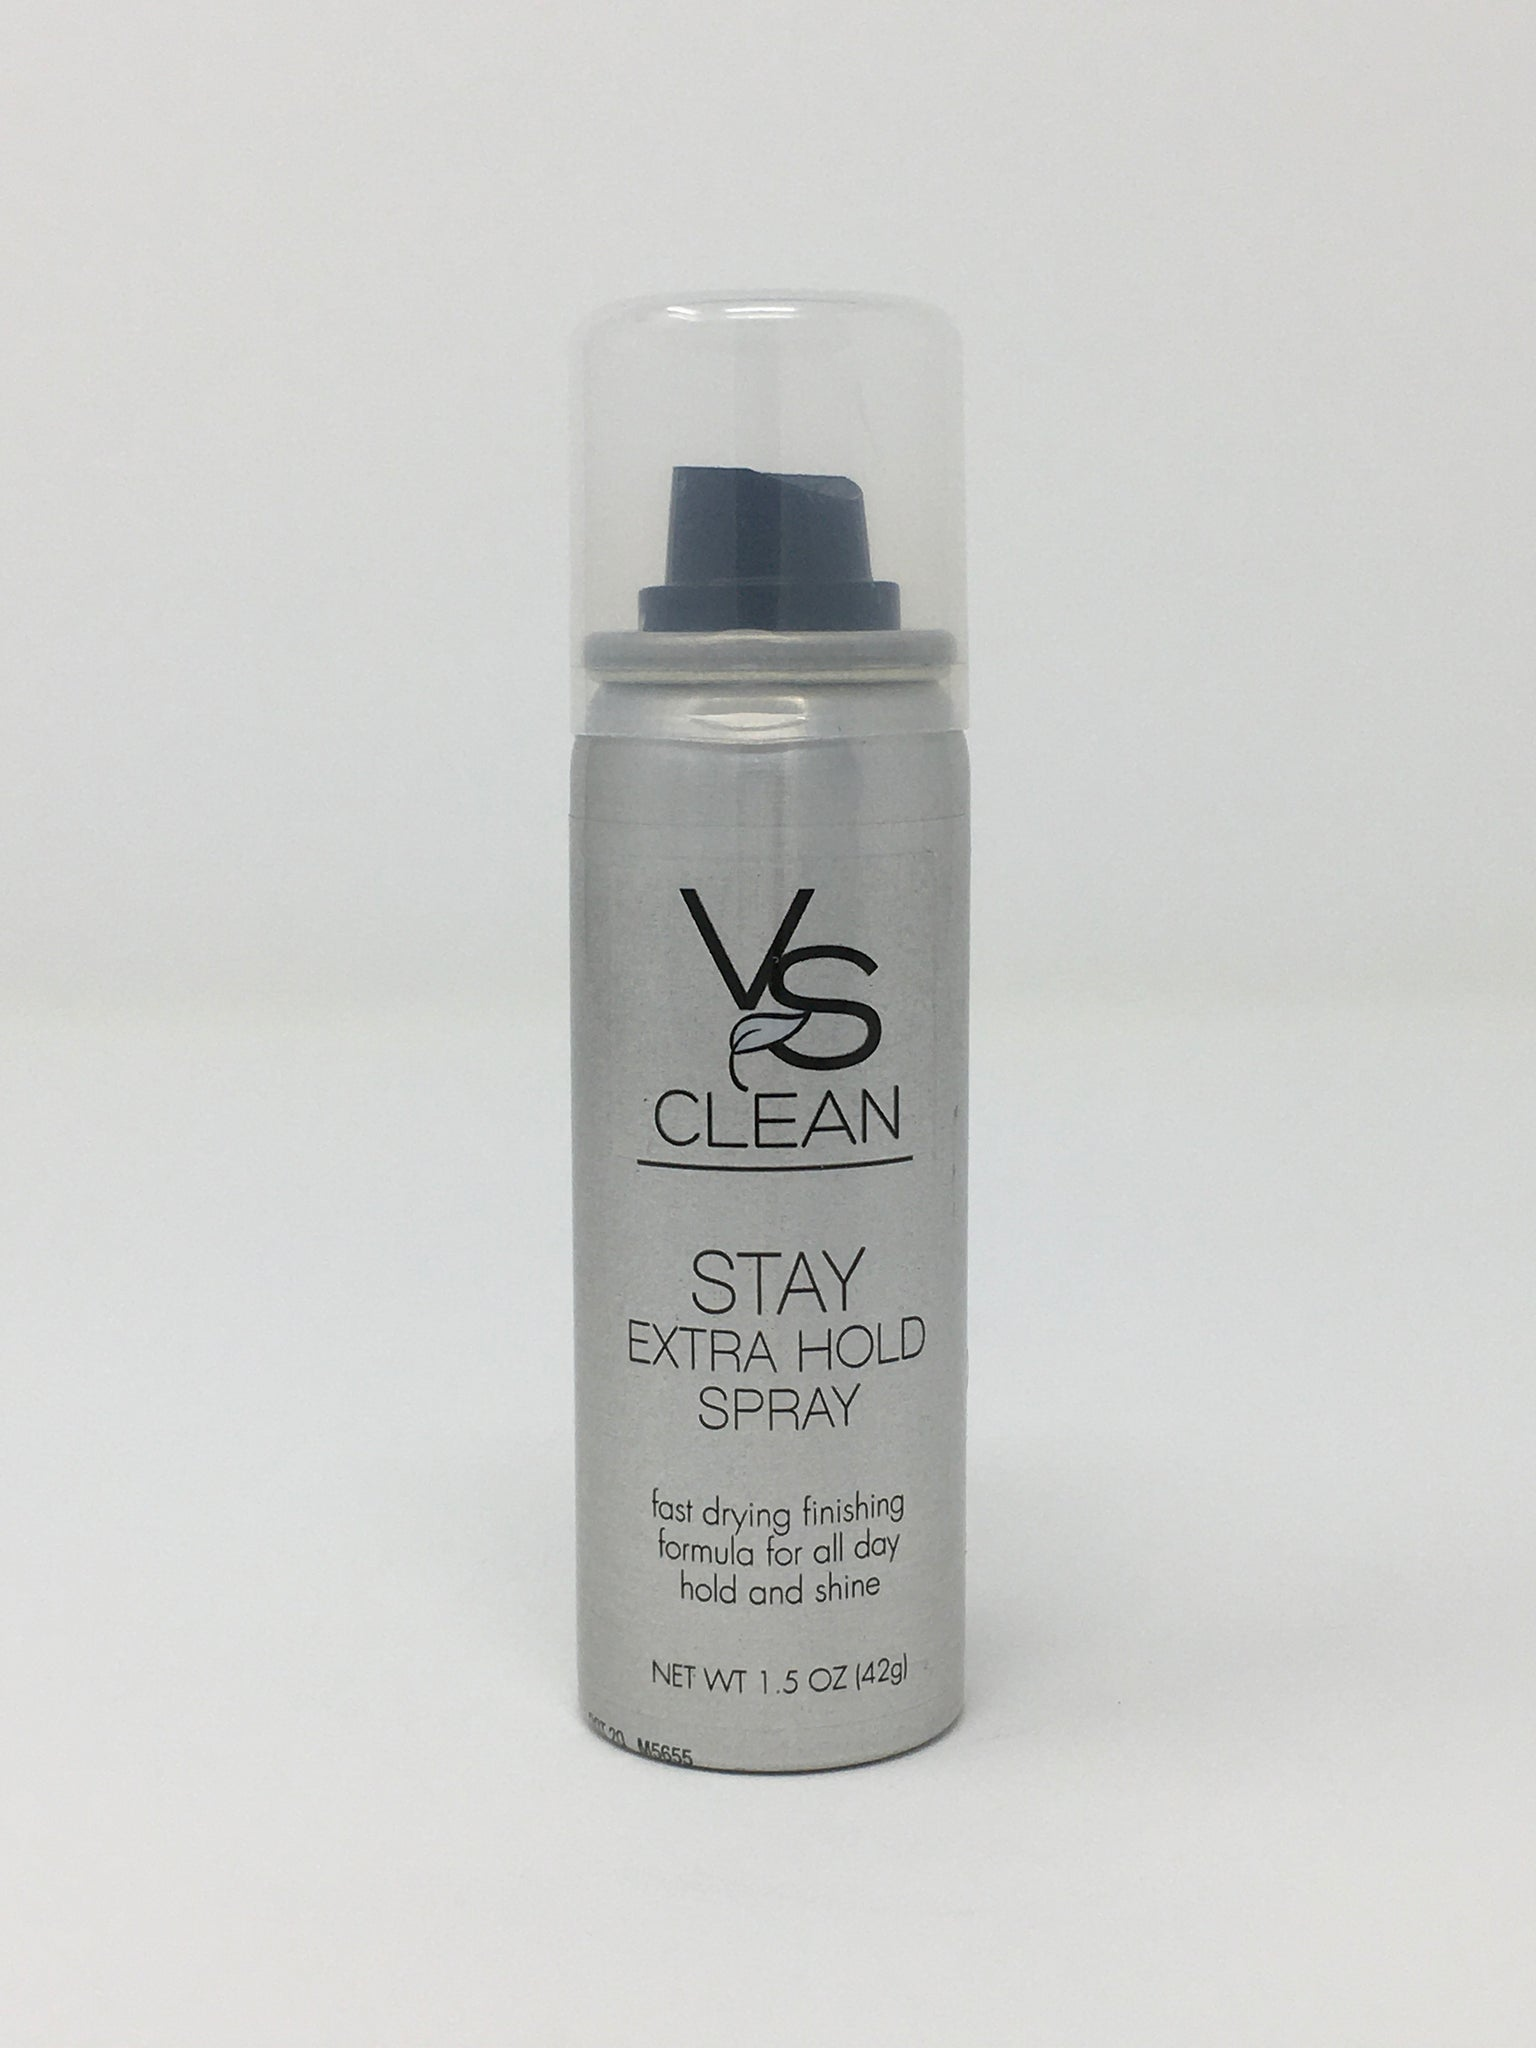 STAY EXTRA HOLD SPRAY TRAVEL SIZE ONLY